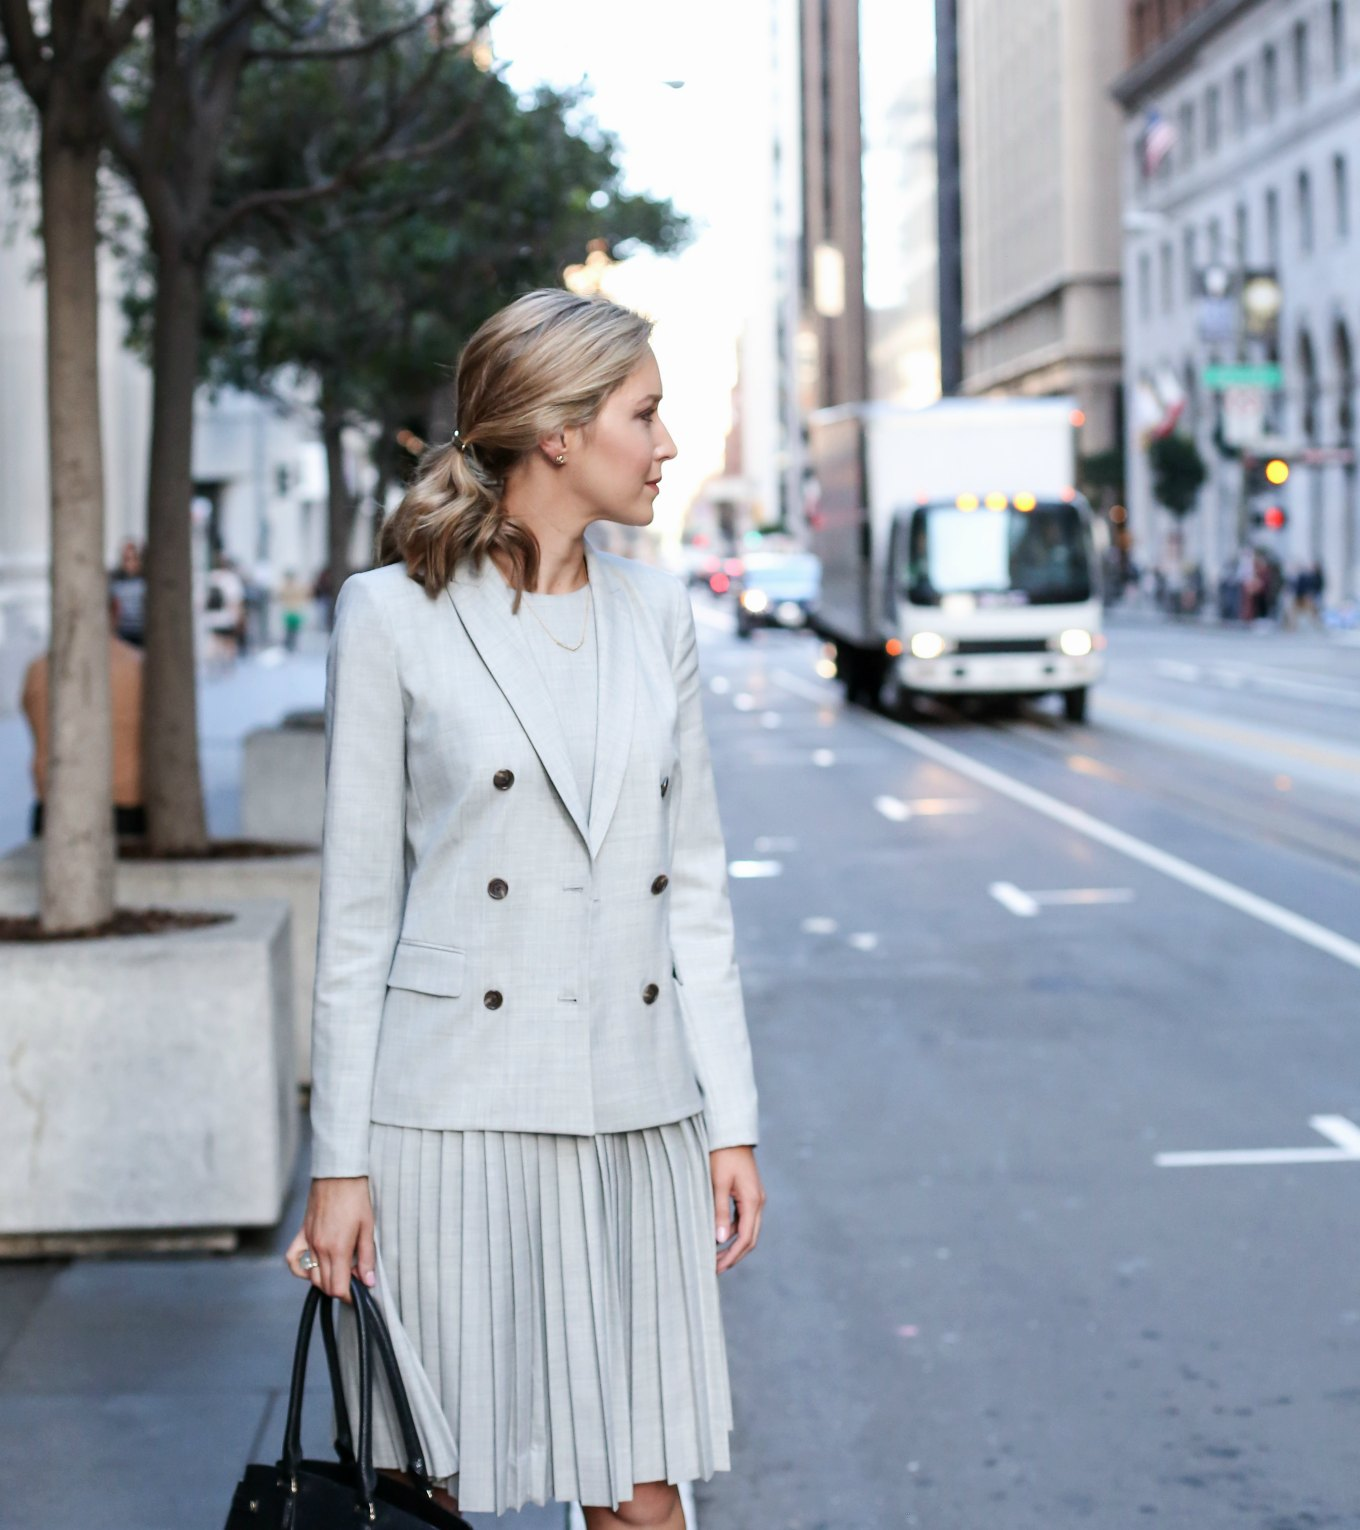 what-to-wear-to-an-interview-business-formal-suit-best-starter-work-wardrobe-essentials-jcrew-9am-super-120s-wool-dress-skirt-pants-jacket-grey-san-francisco-sf-fashion-blog-memor.jpg